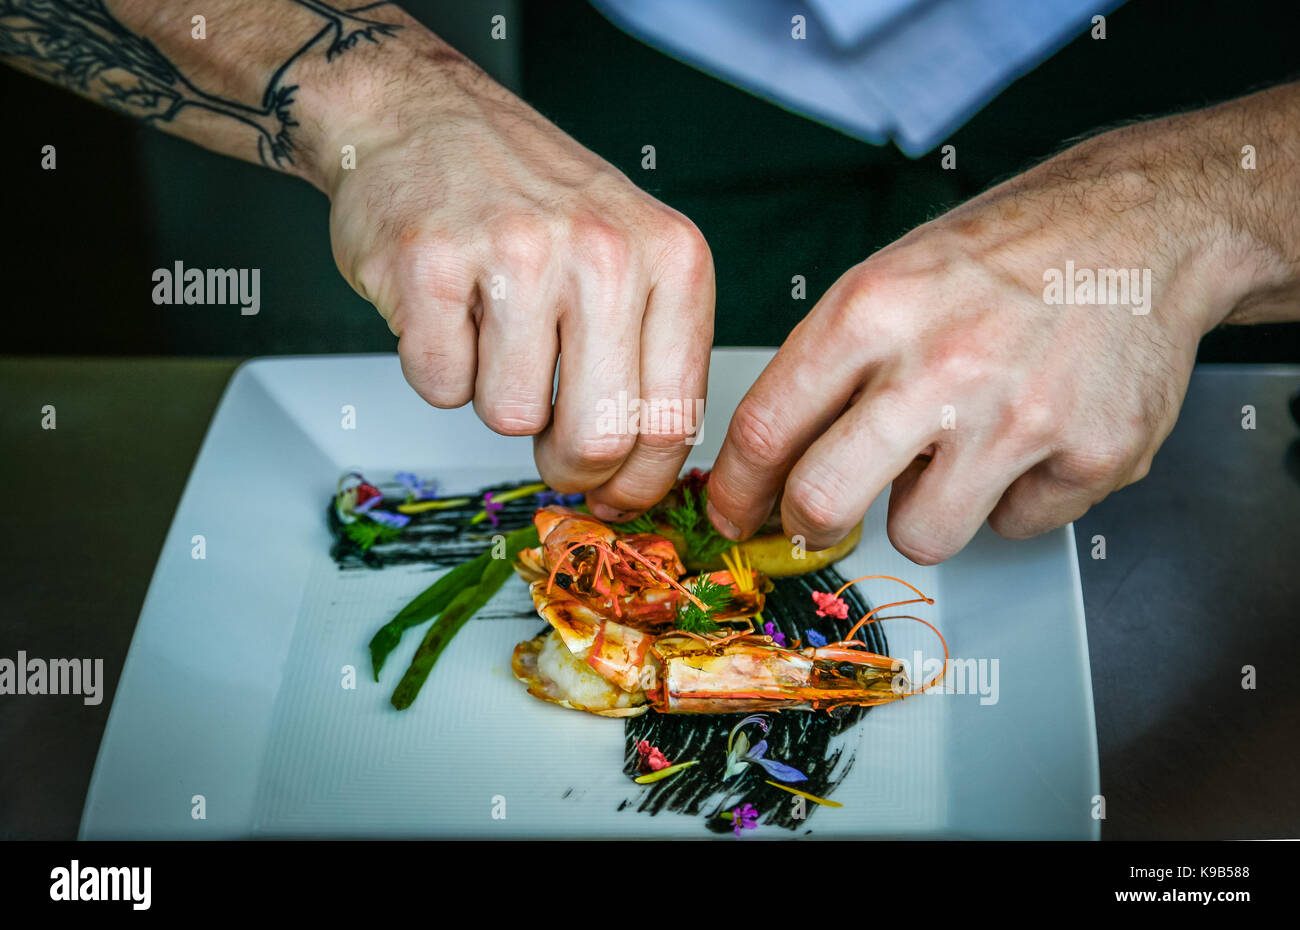 Top Chef in Action - Stock Image